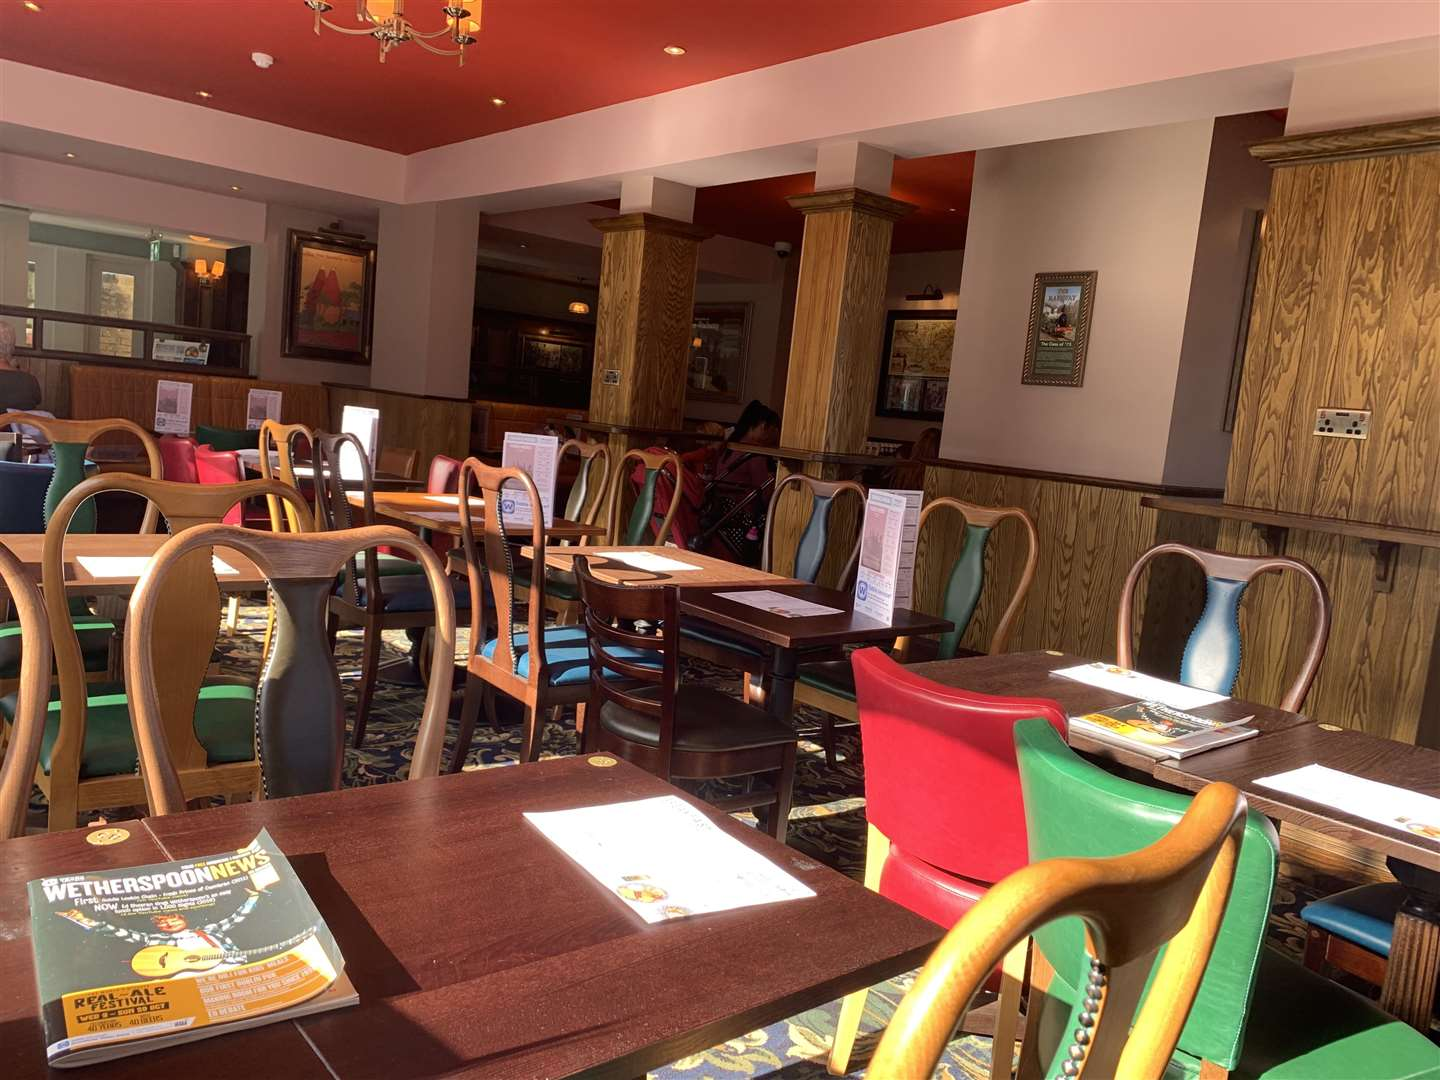 Inside the new Wetherspoon, The Railway in Station Road, Rainham (18009011)